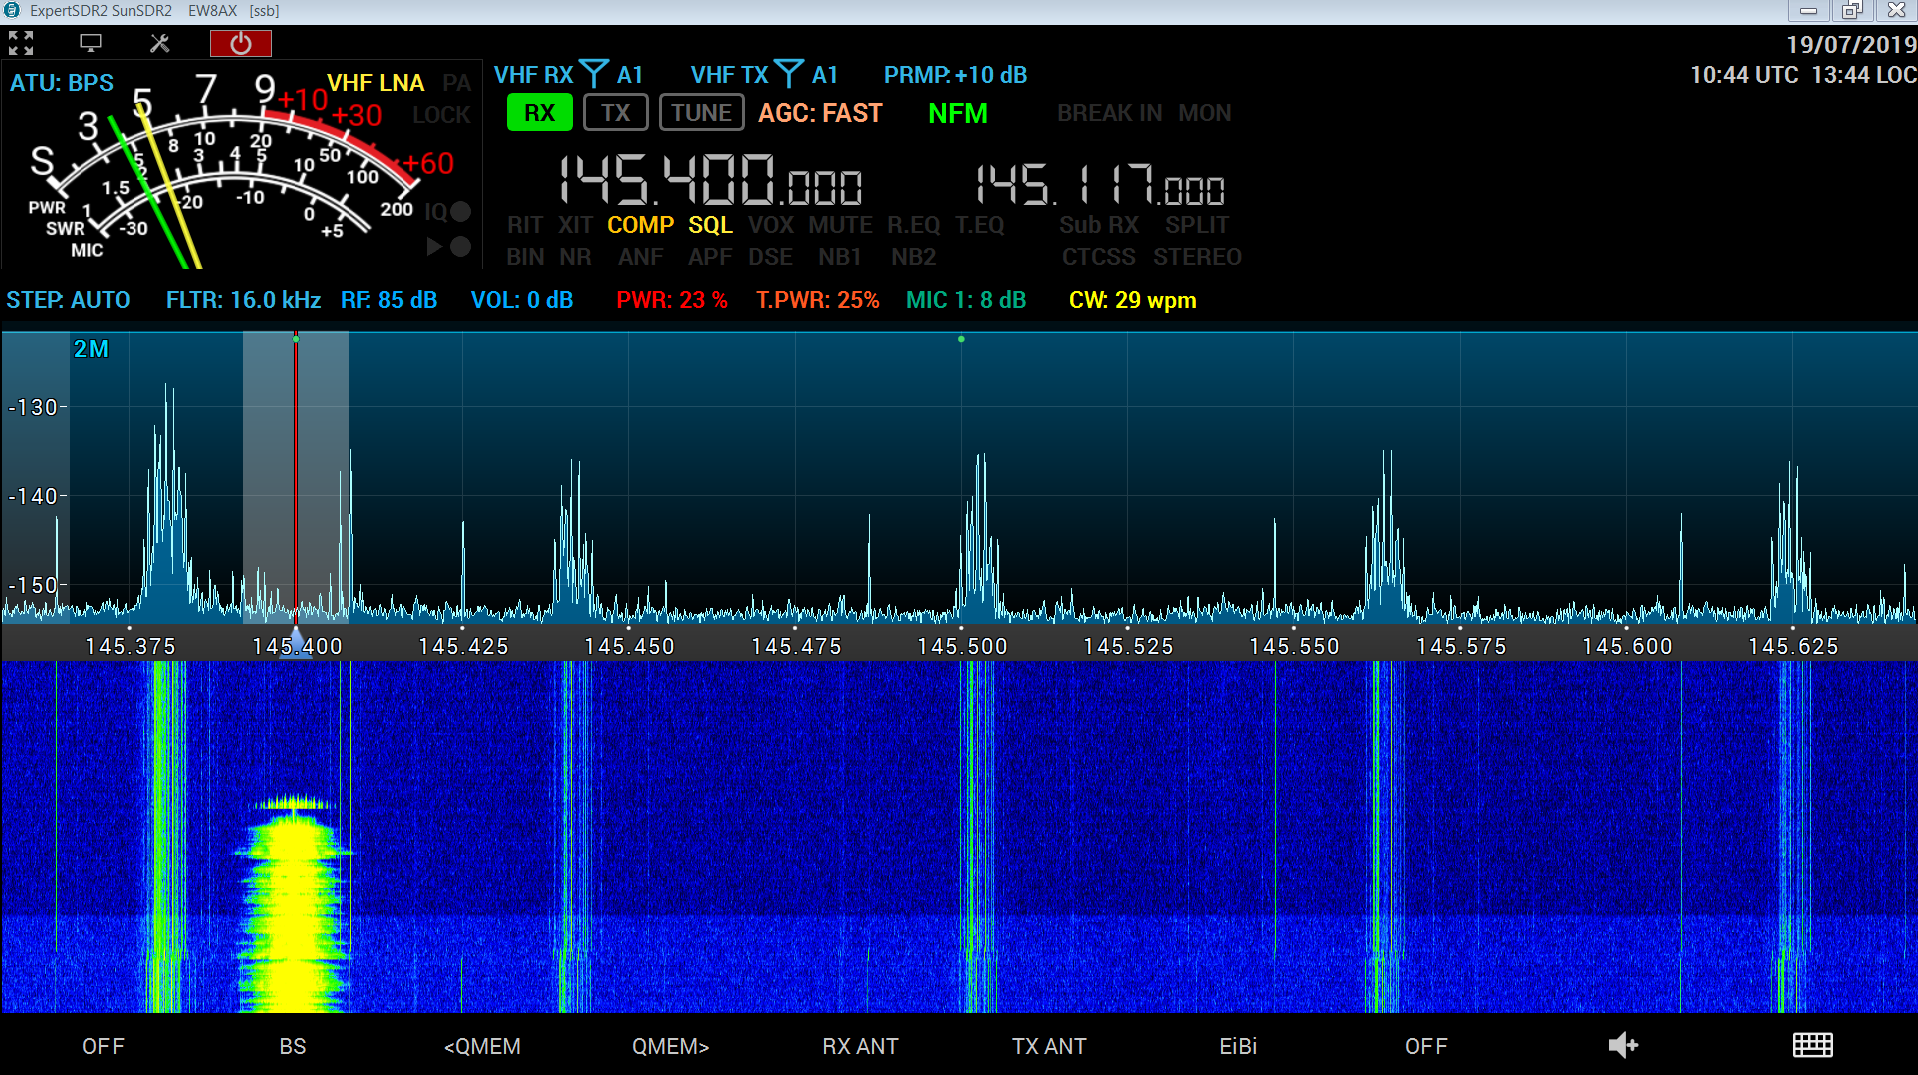 ew8ax MB1 software on Sunsdr2